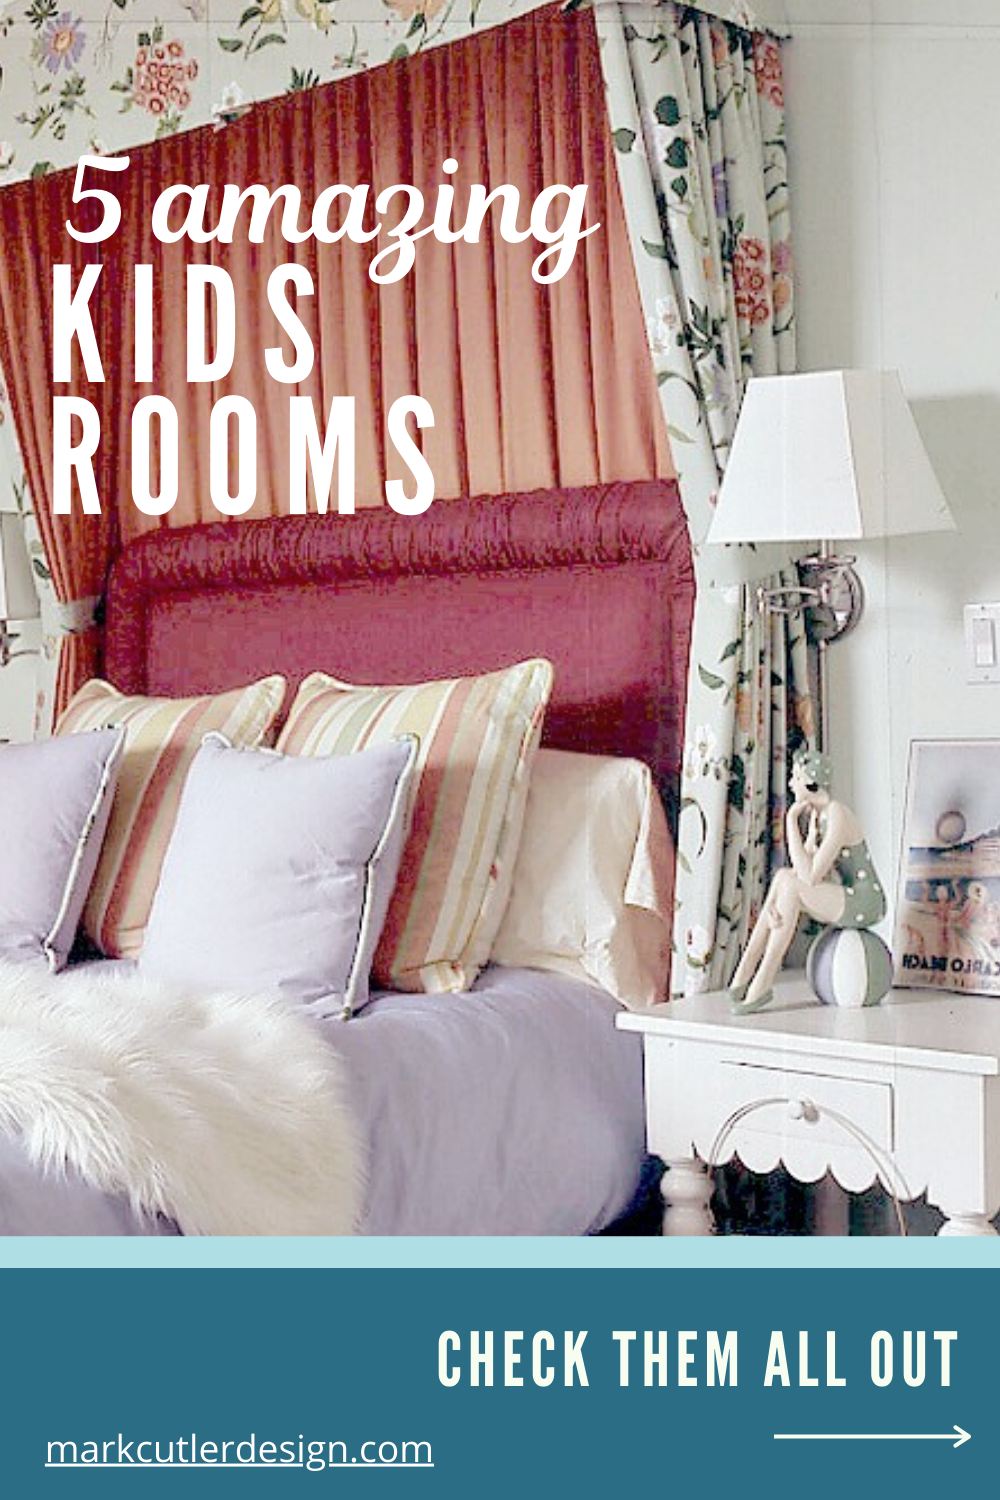 Kids Bedroom Design Inspiration By Celebrity Interior Designer In 2020 Bedroom Design Inspiration Kids Bedroom Designs Kids Room Design